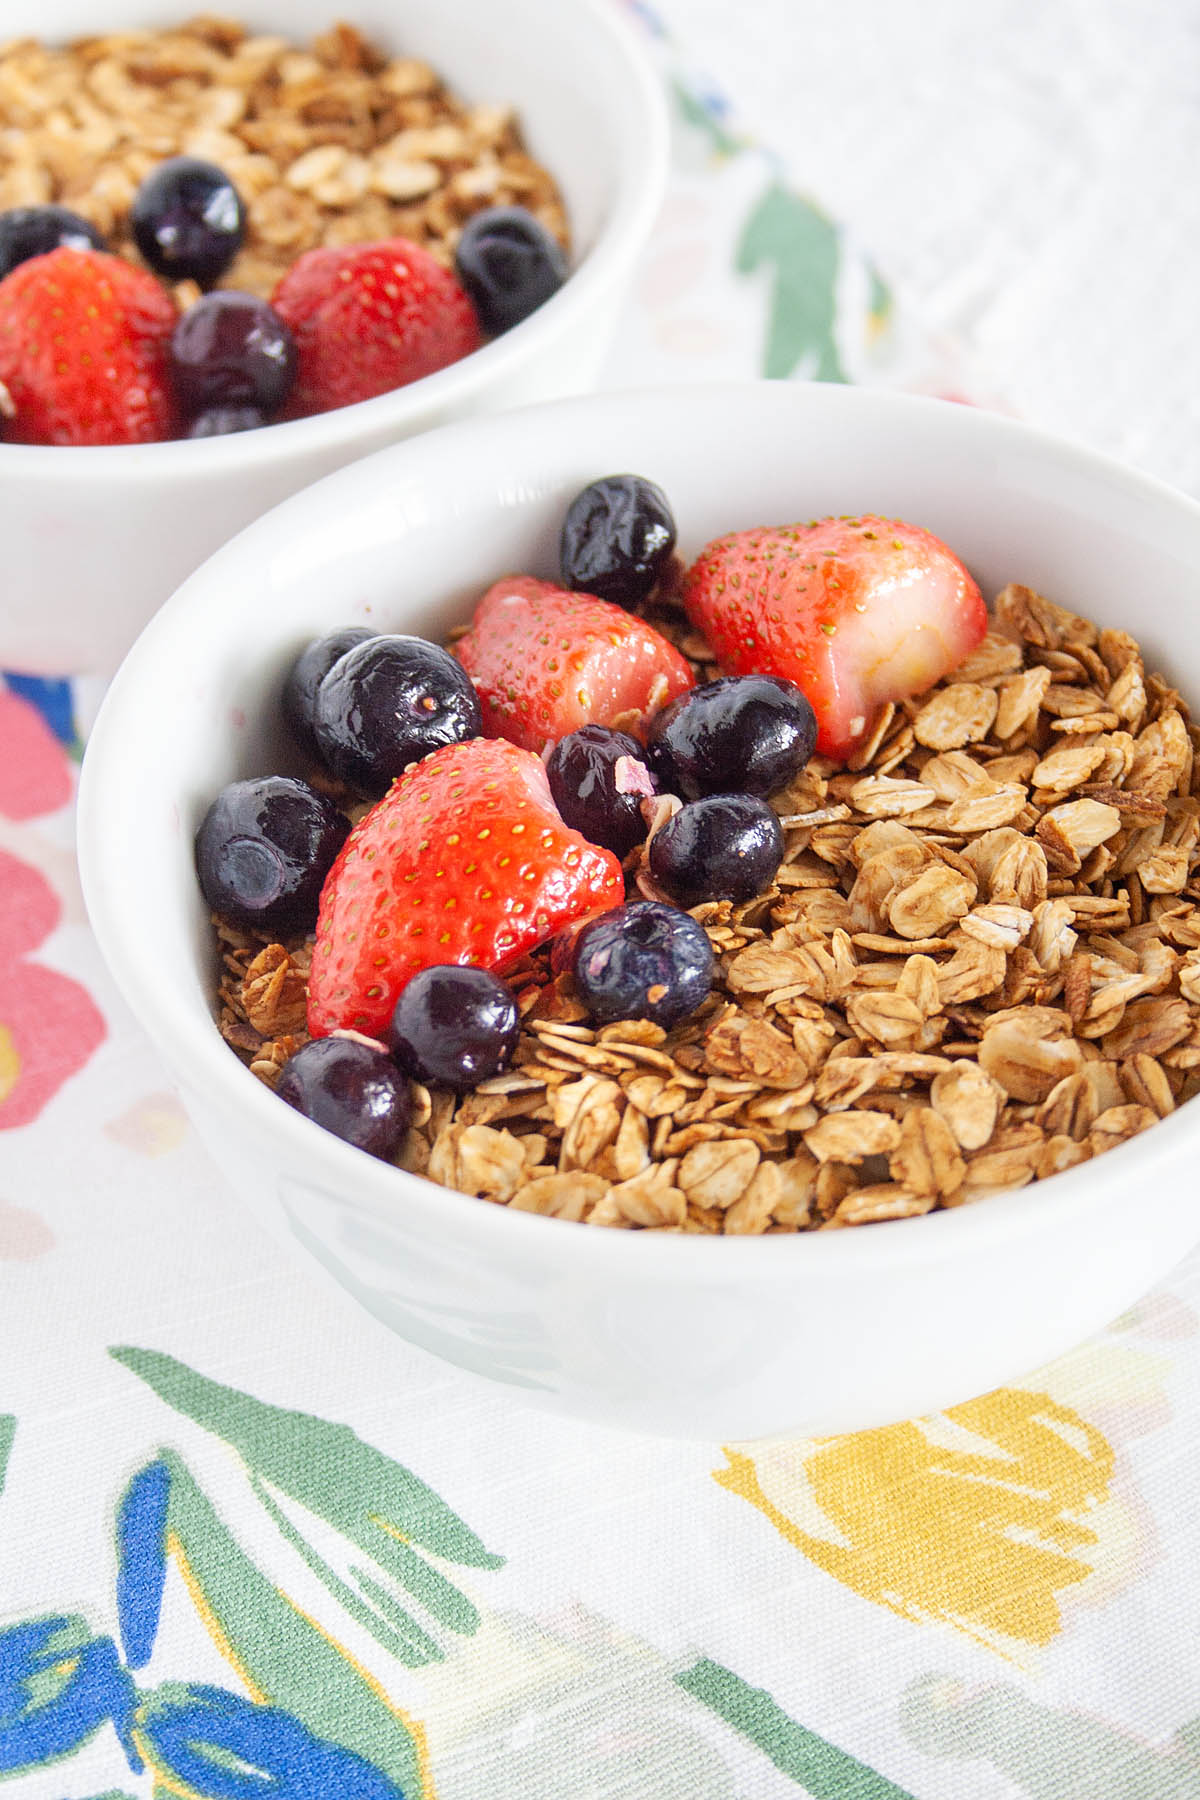 Maple and Molasses Granola in bowls with berries.